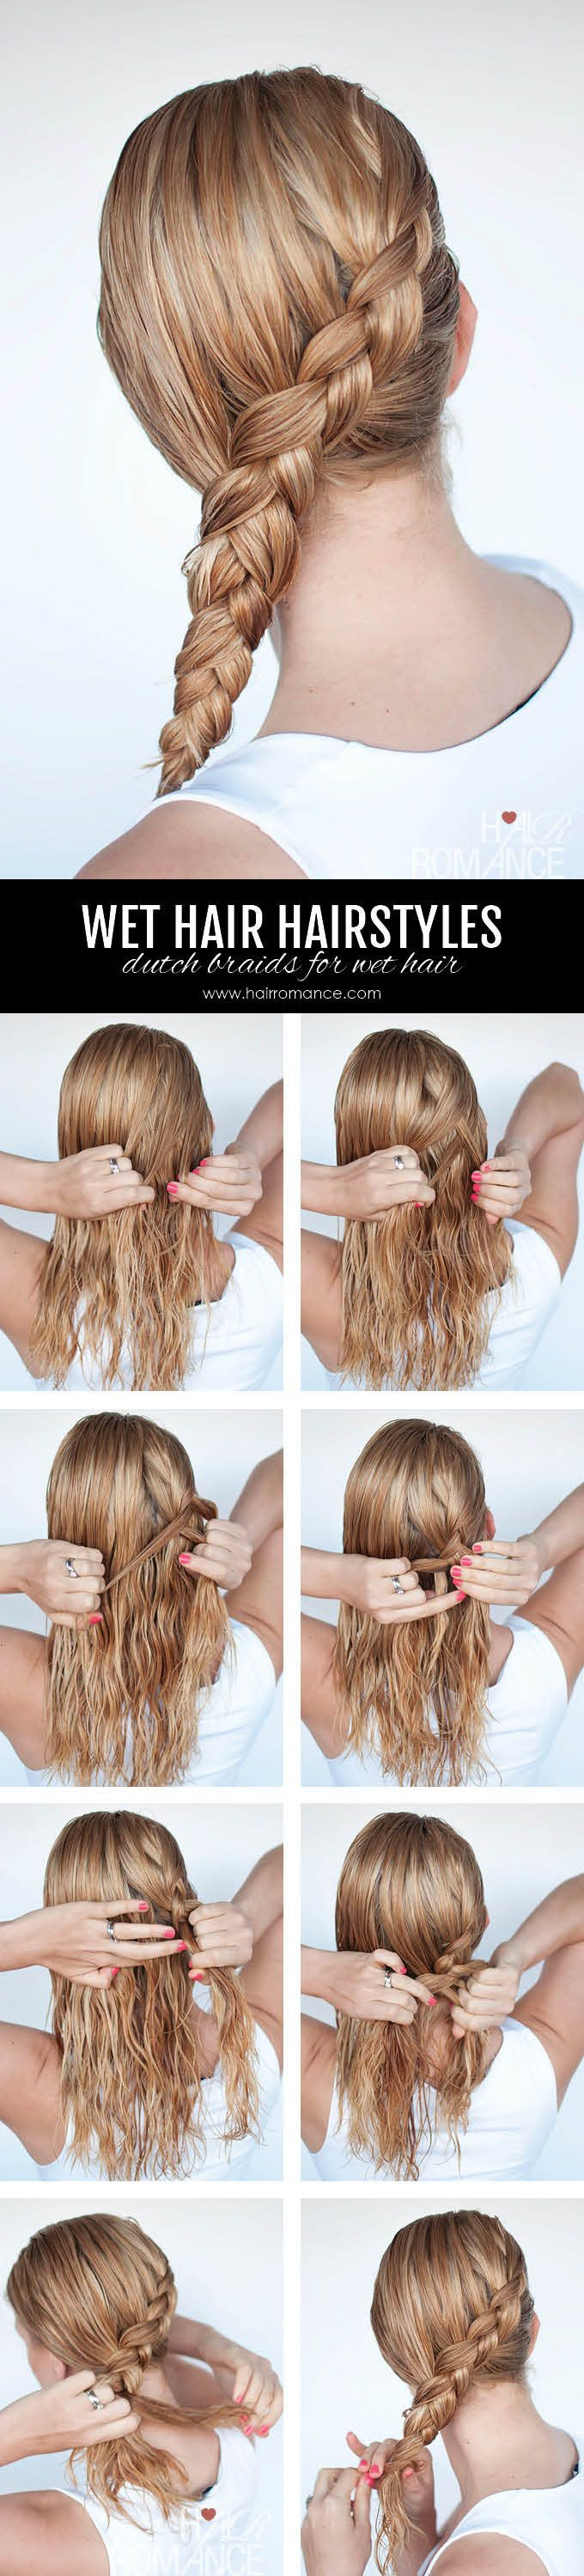 Hairstyle Tutorials Best Hairstyles For Wet Hair 3 Simple Braid Tutorials You Can Wear In